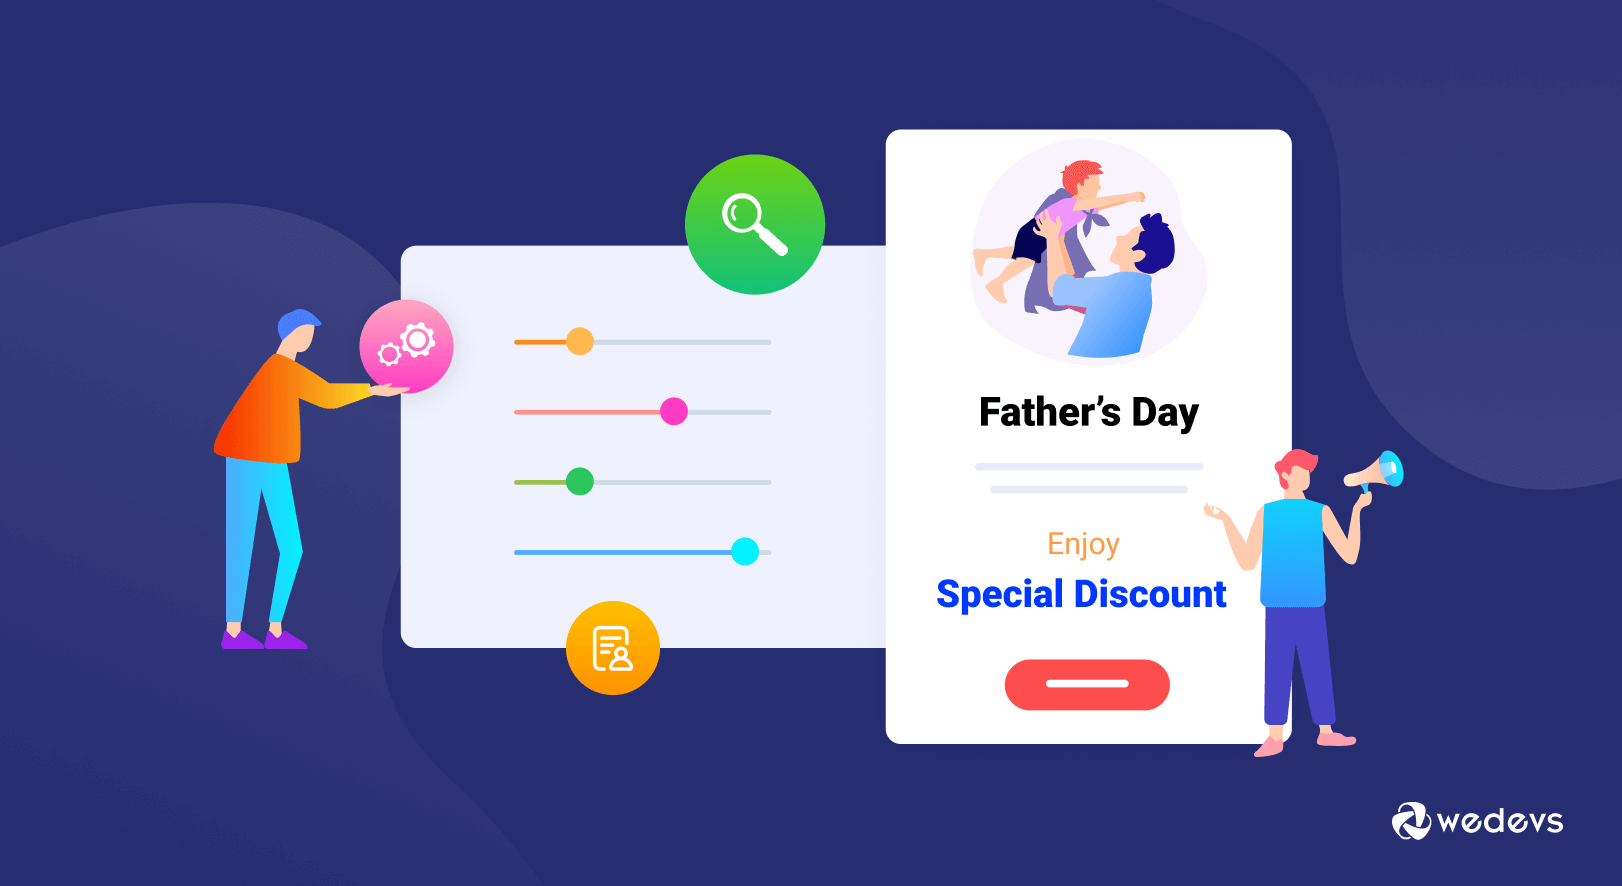 How to Run a Successful Father's Day Campaign (The Do's & Dont's)